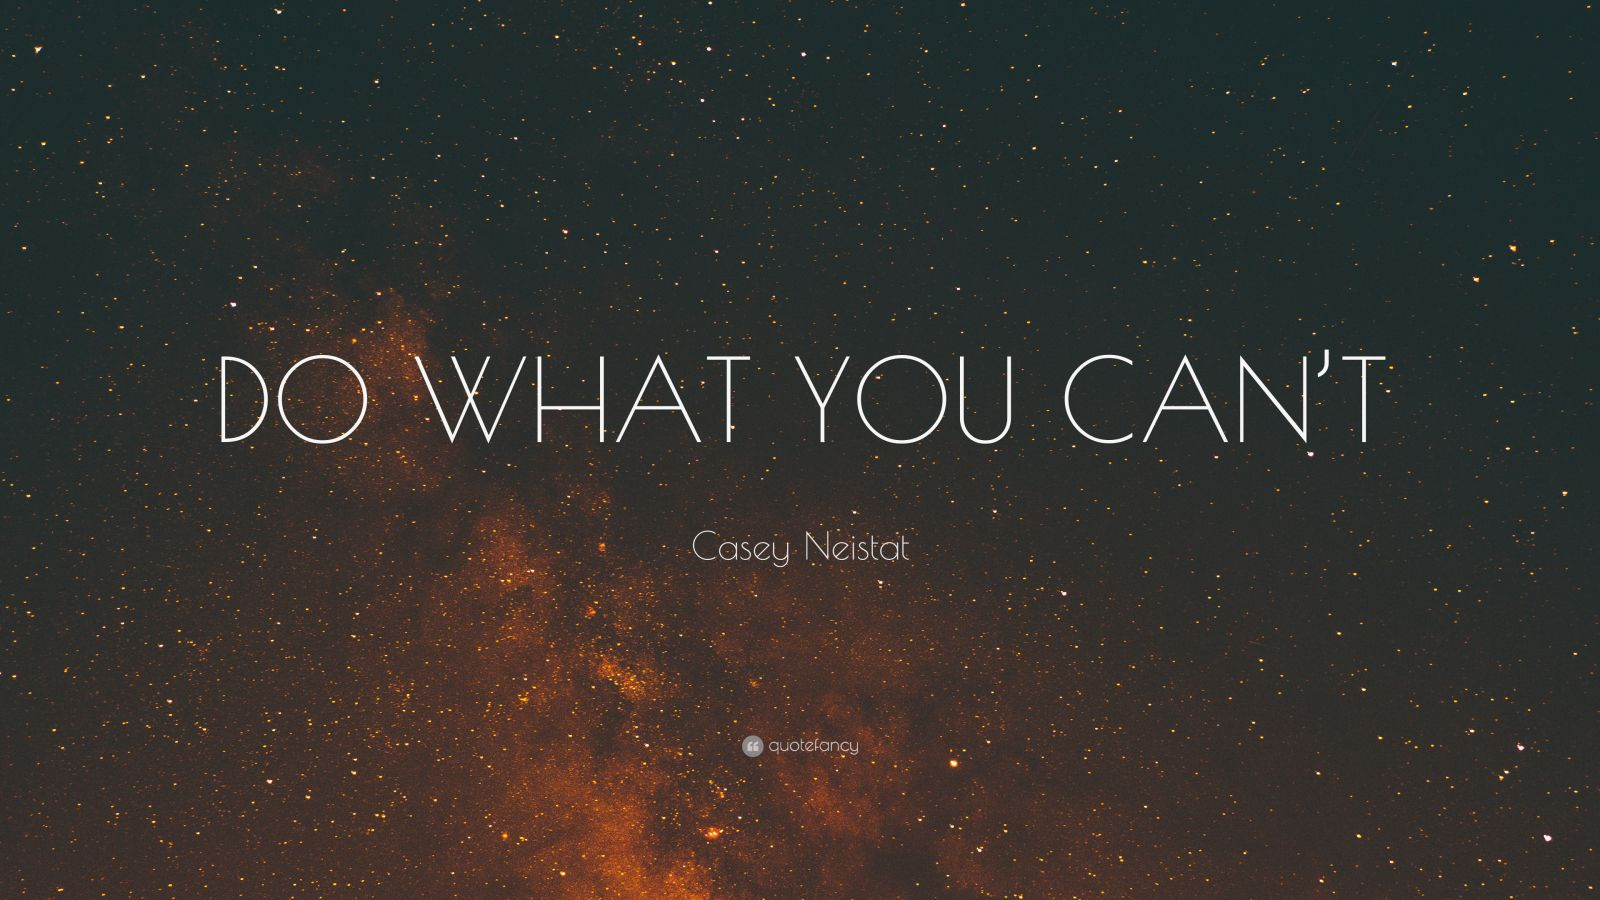 Busy Wallpaper With Quotes Casey Neistat Quotes 31 Wallpapers Quotefancy